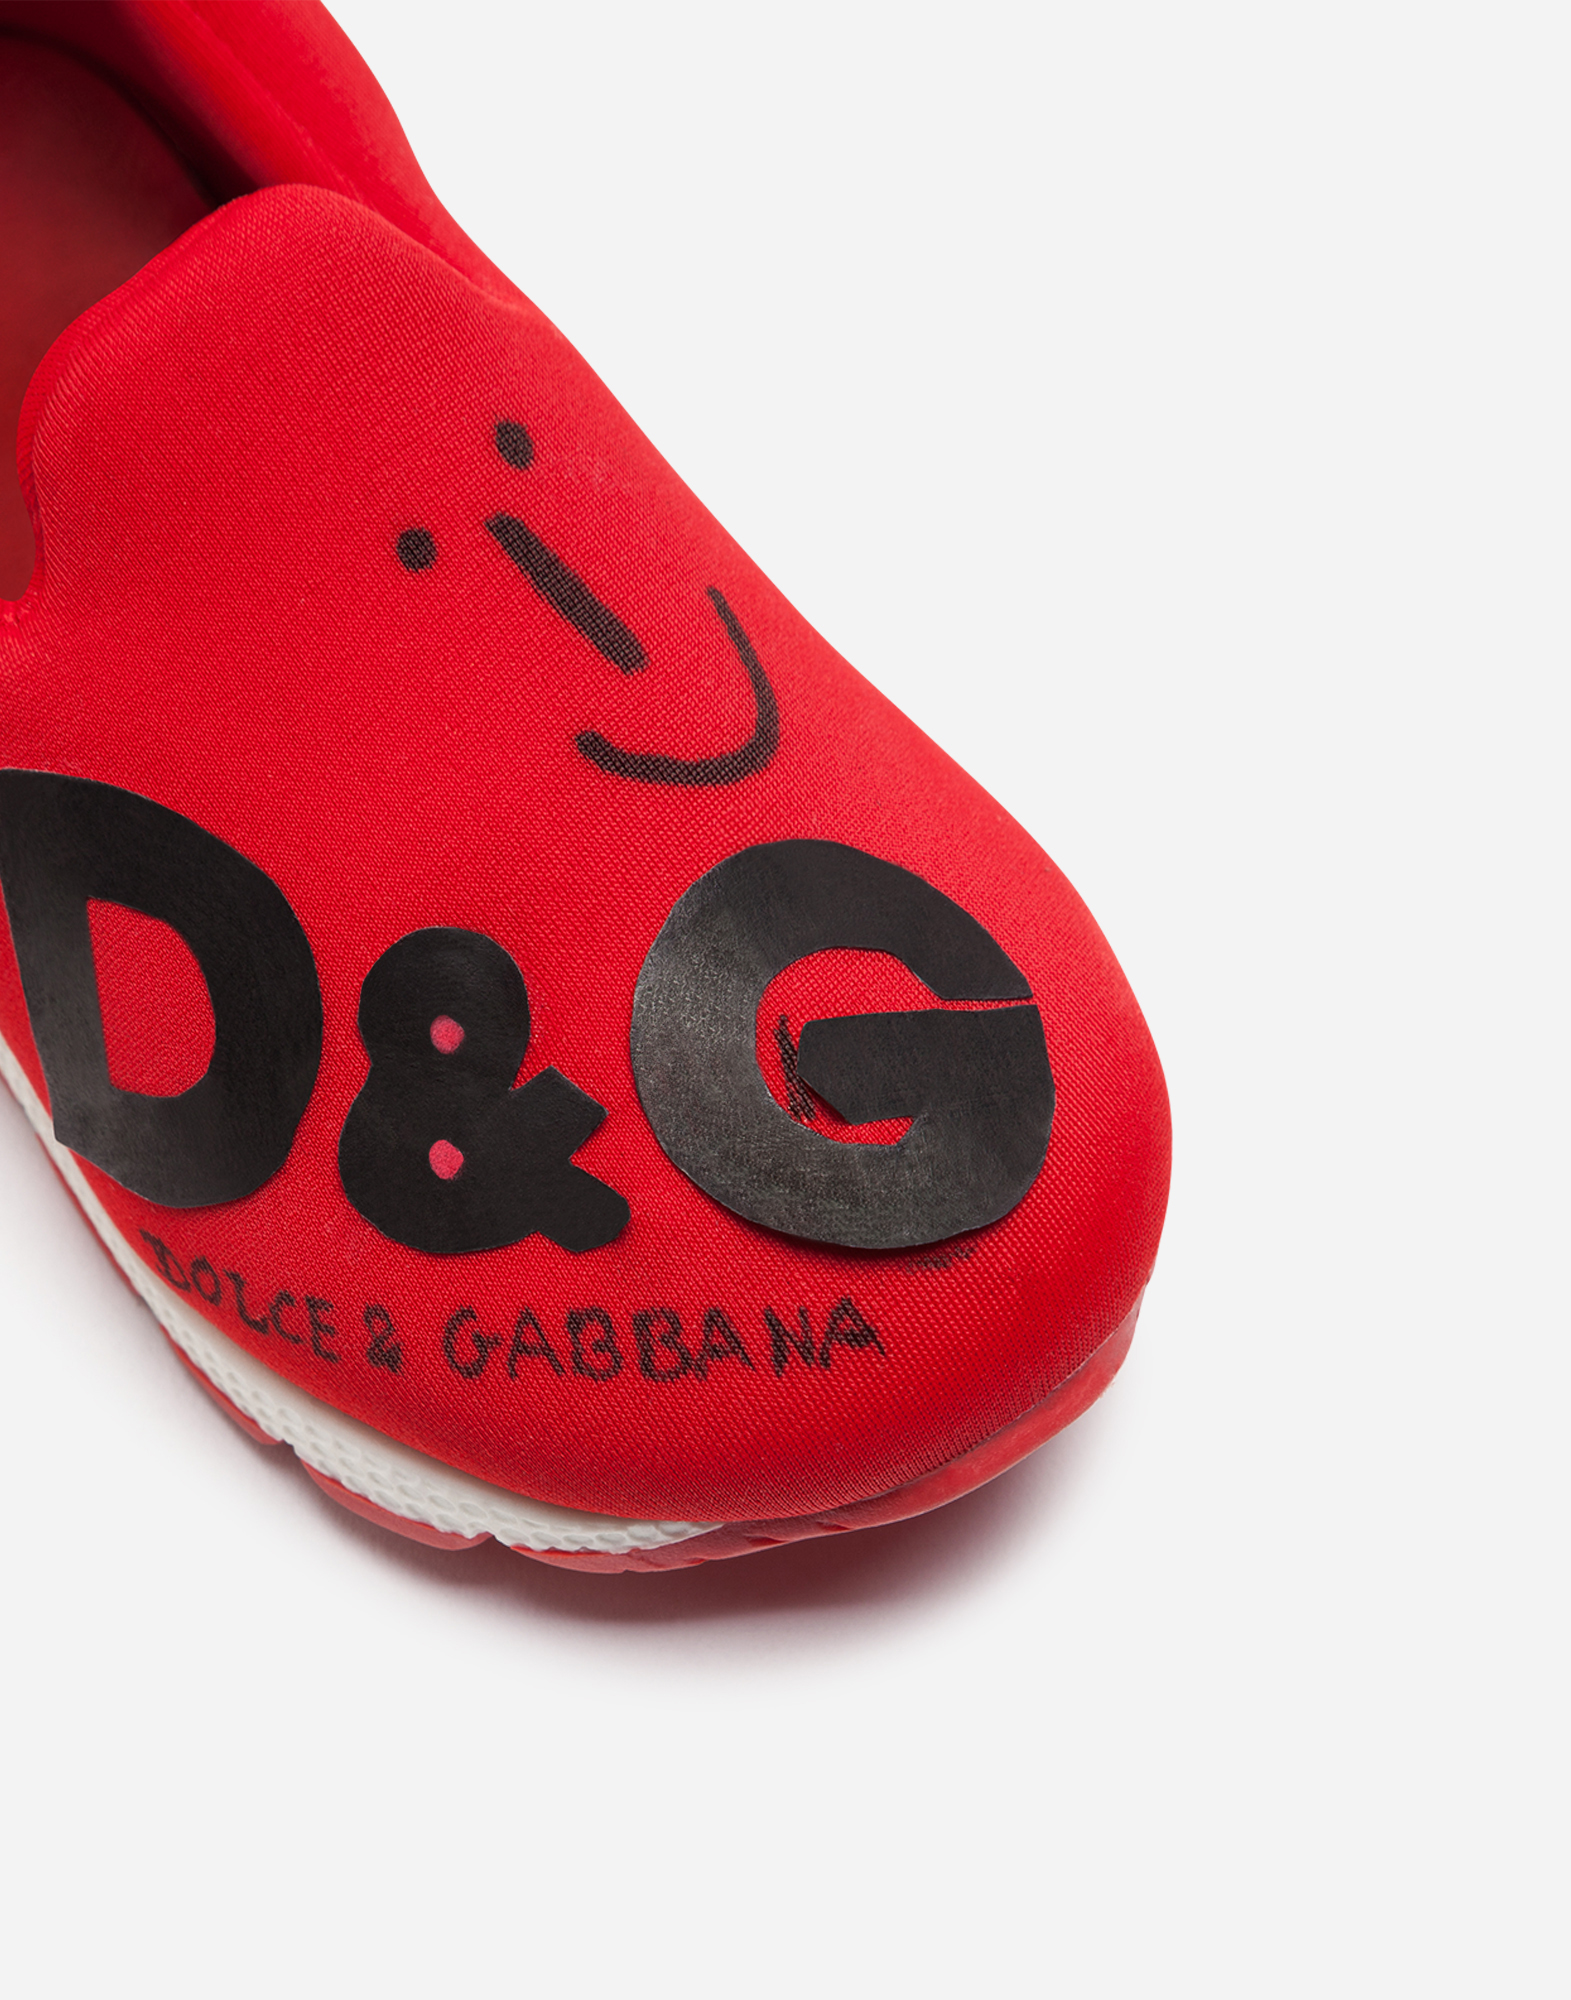 Dolce & Gabbana NEOPRENE SLIP-ON SNEAKERS